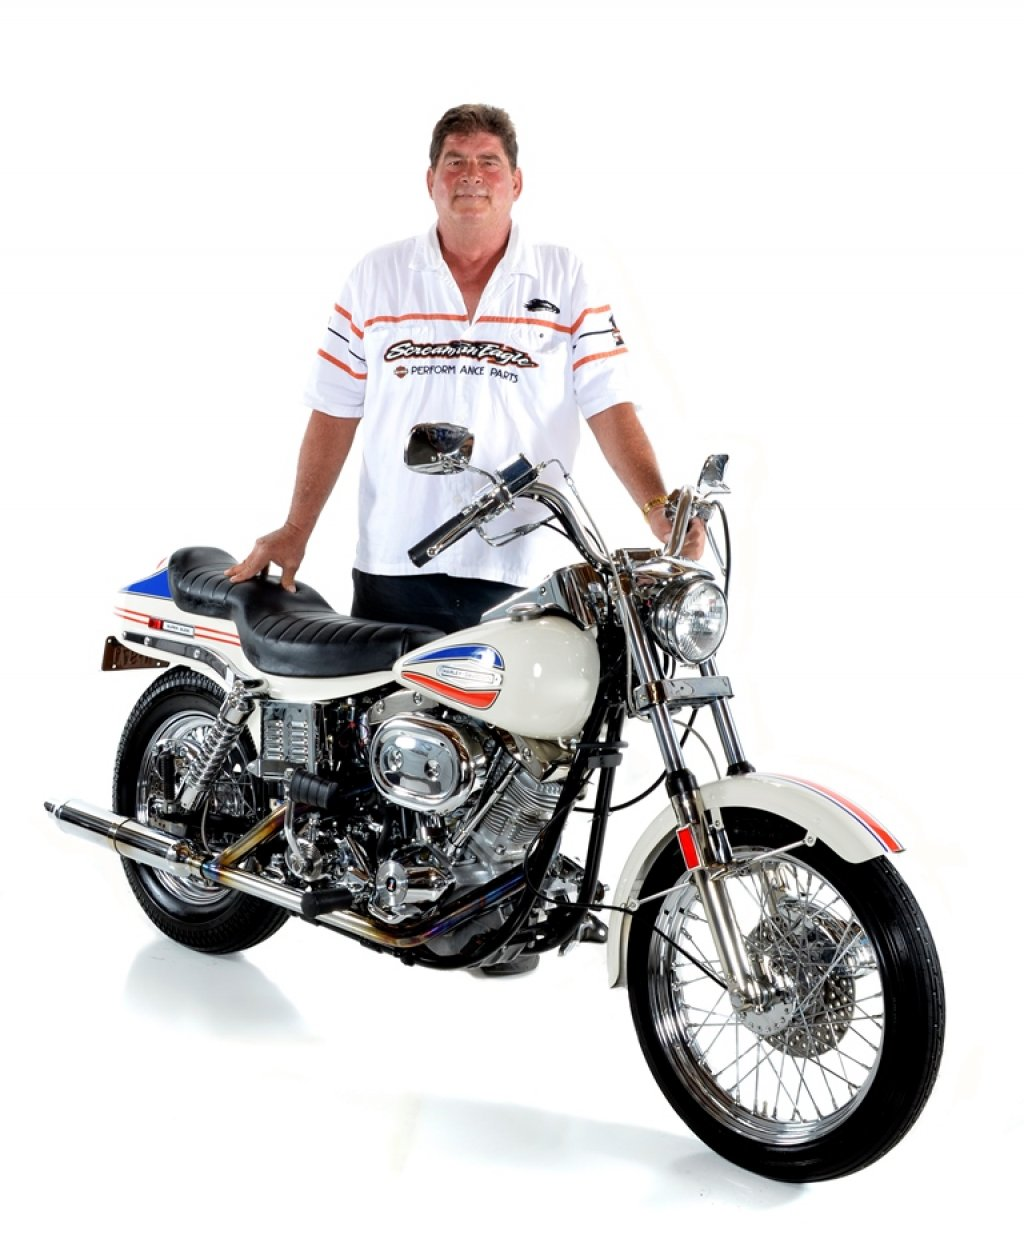 Mark Kozak & His 1971 Harley-Davidson FX Super Glide